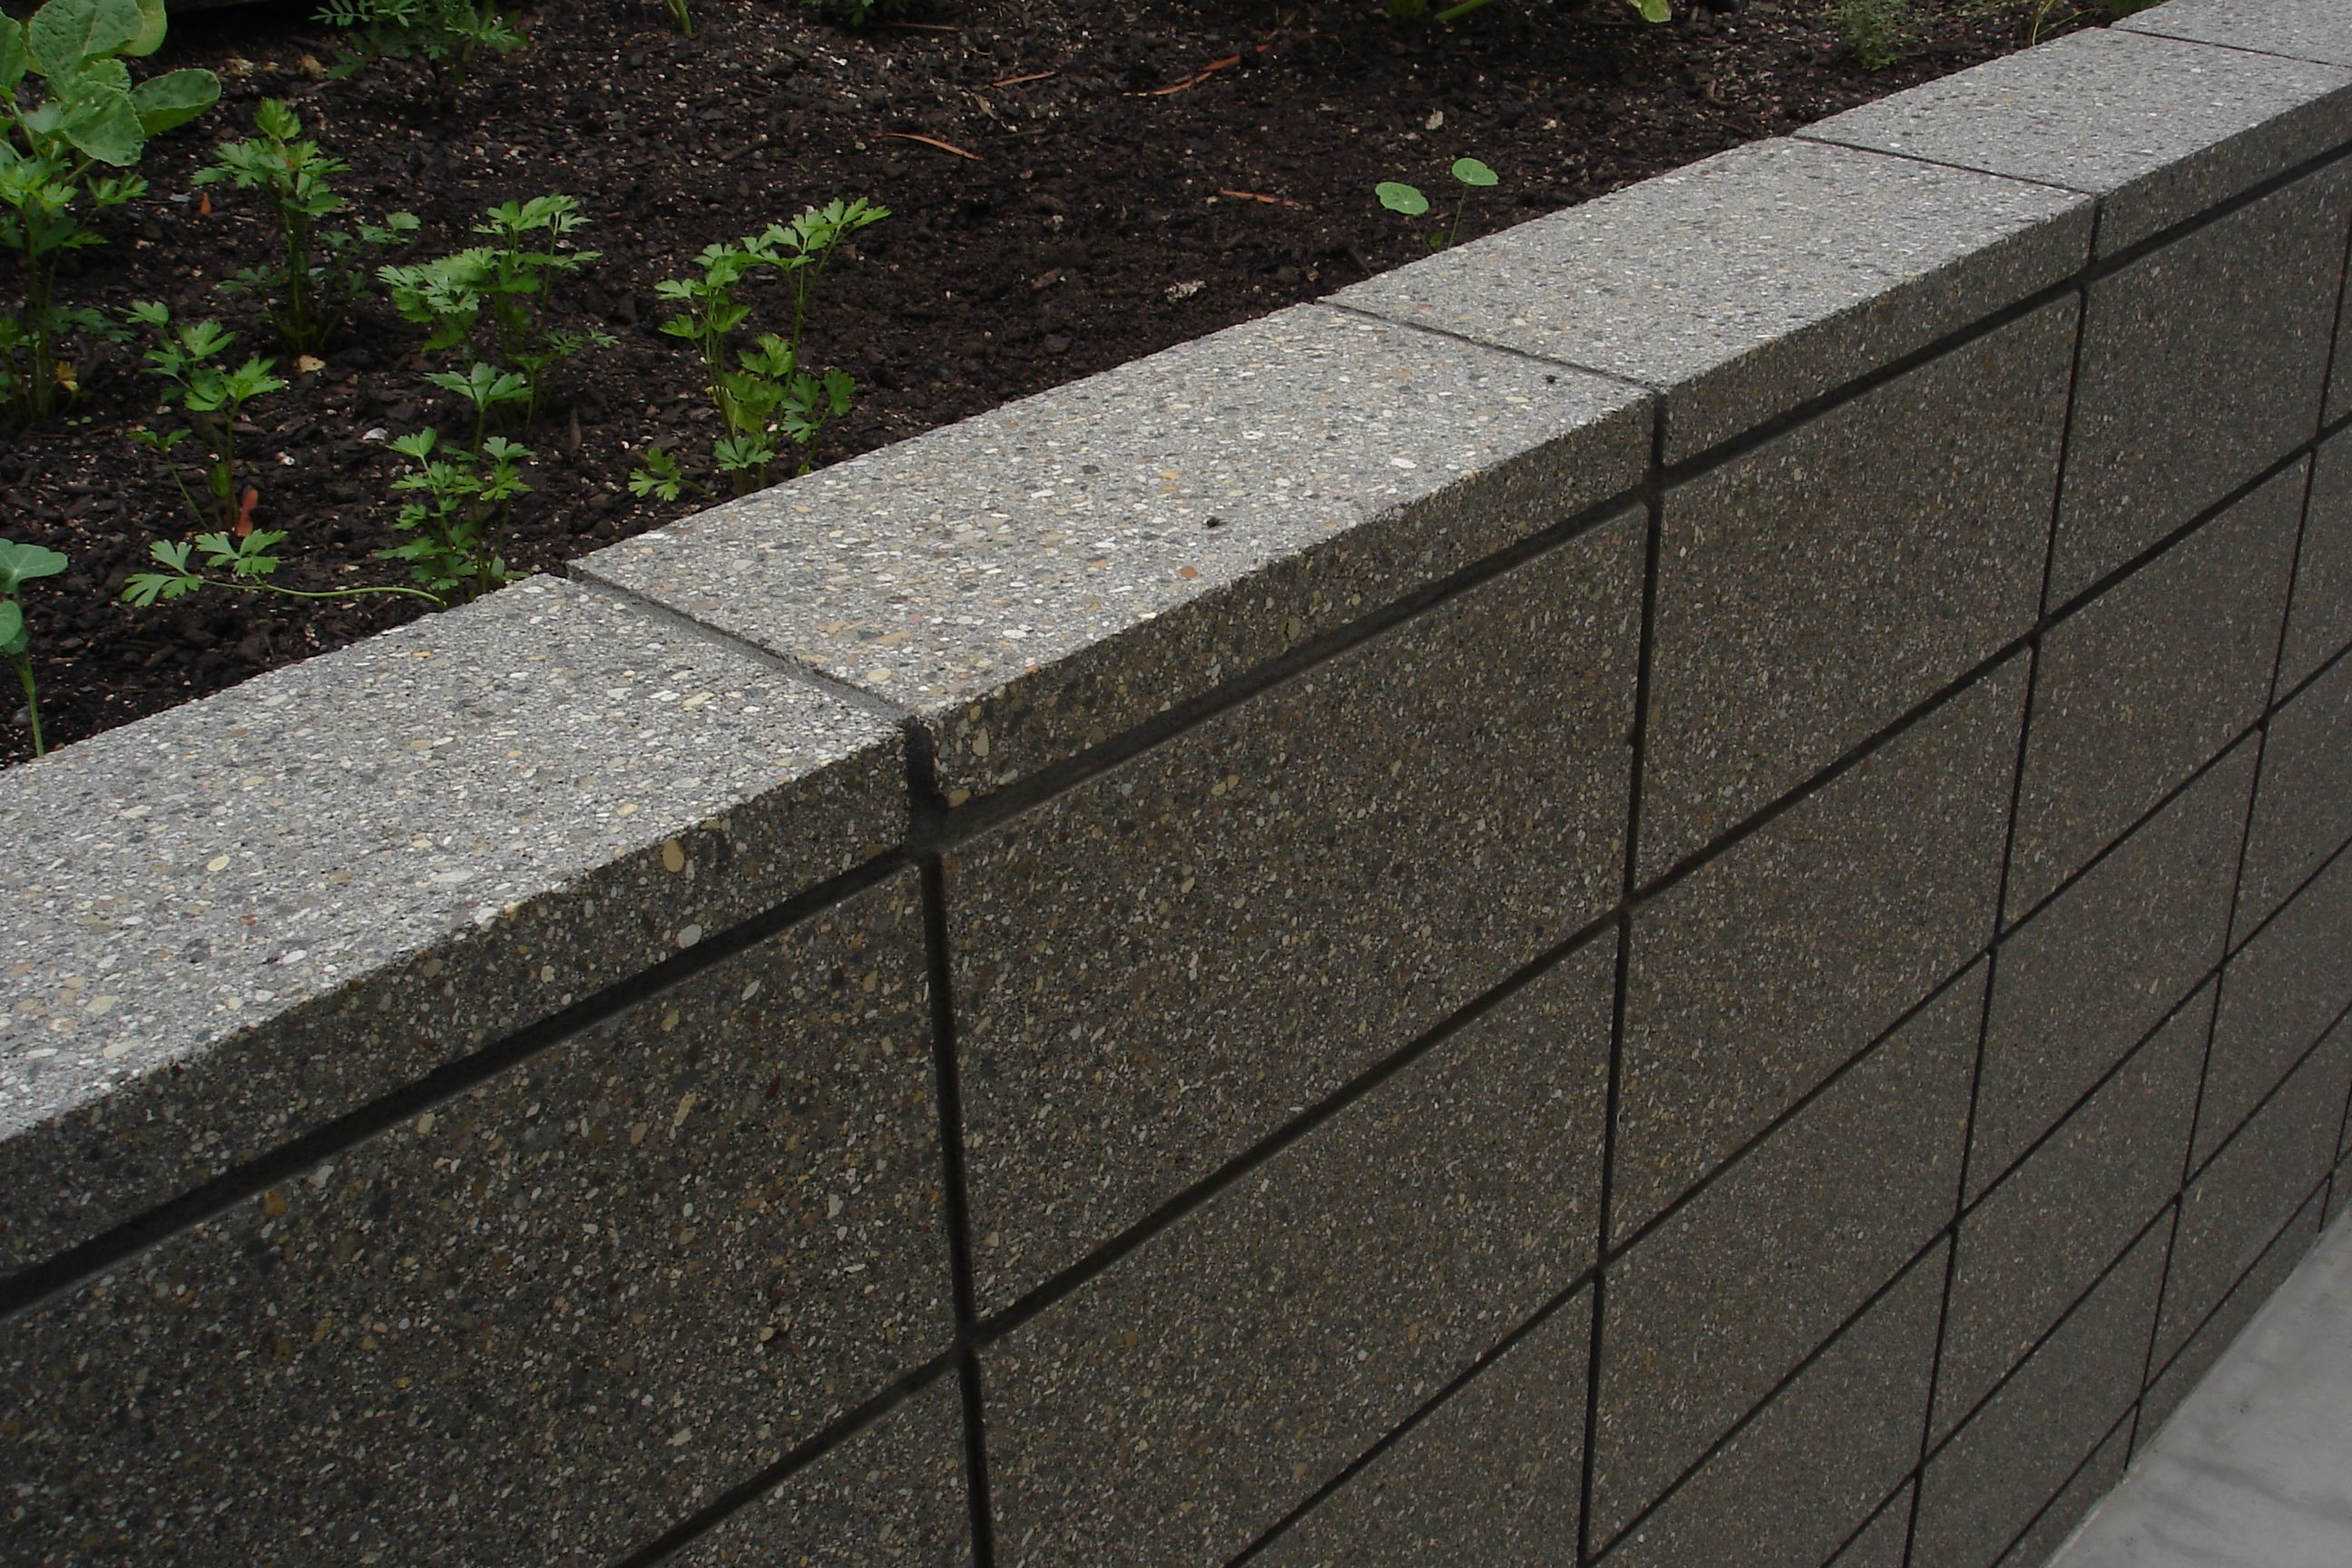 Concrete Block Retaining Wall Design geogrid big block retaining wall typical wall cross section recon Find This Pin And More On Retaining Walls Tasty Concrete Block Retaining Wall Design